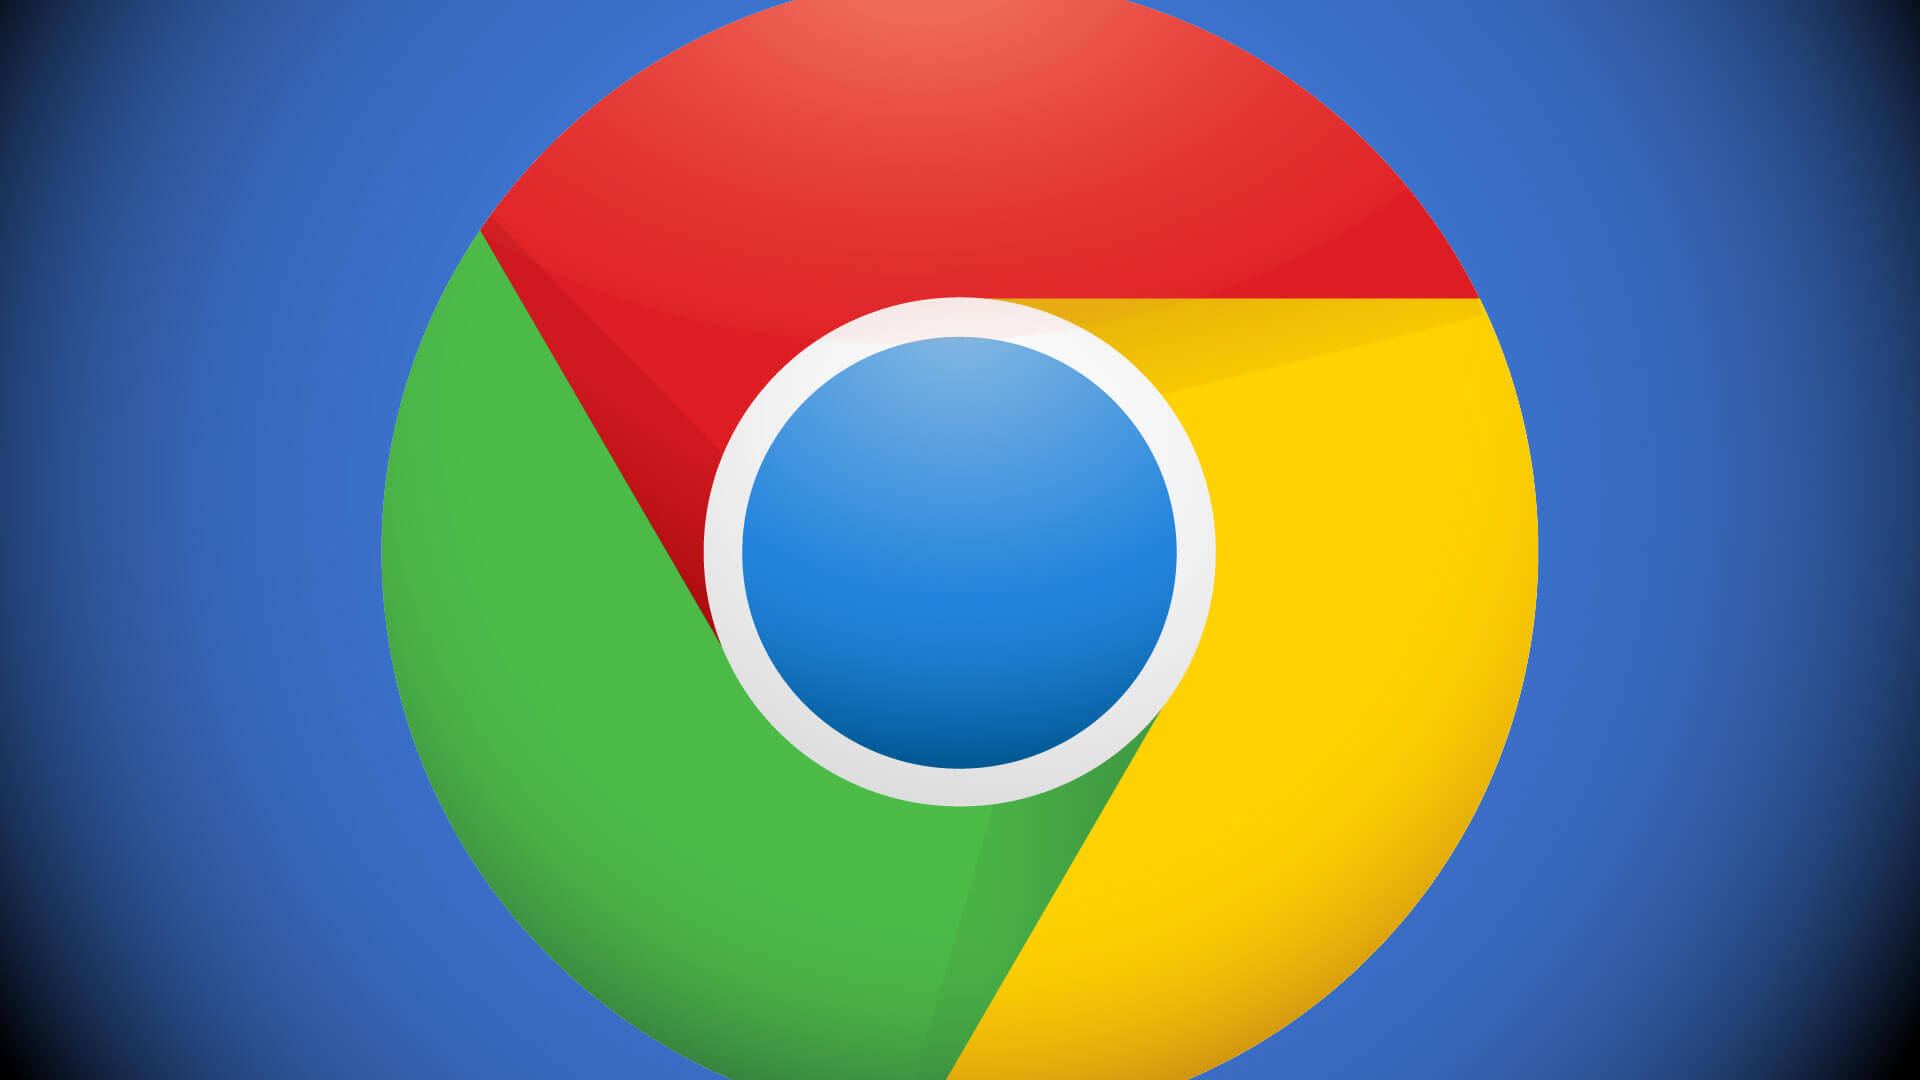 Как изменить размер кэша Google Chrome в Windows 10